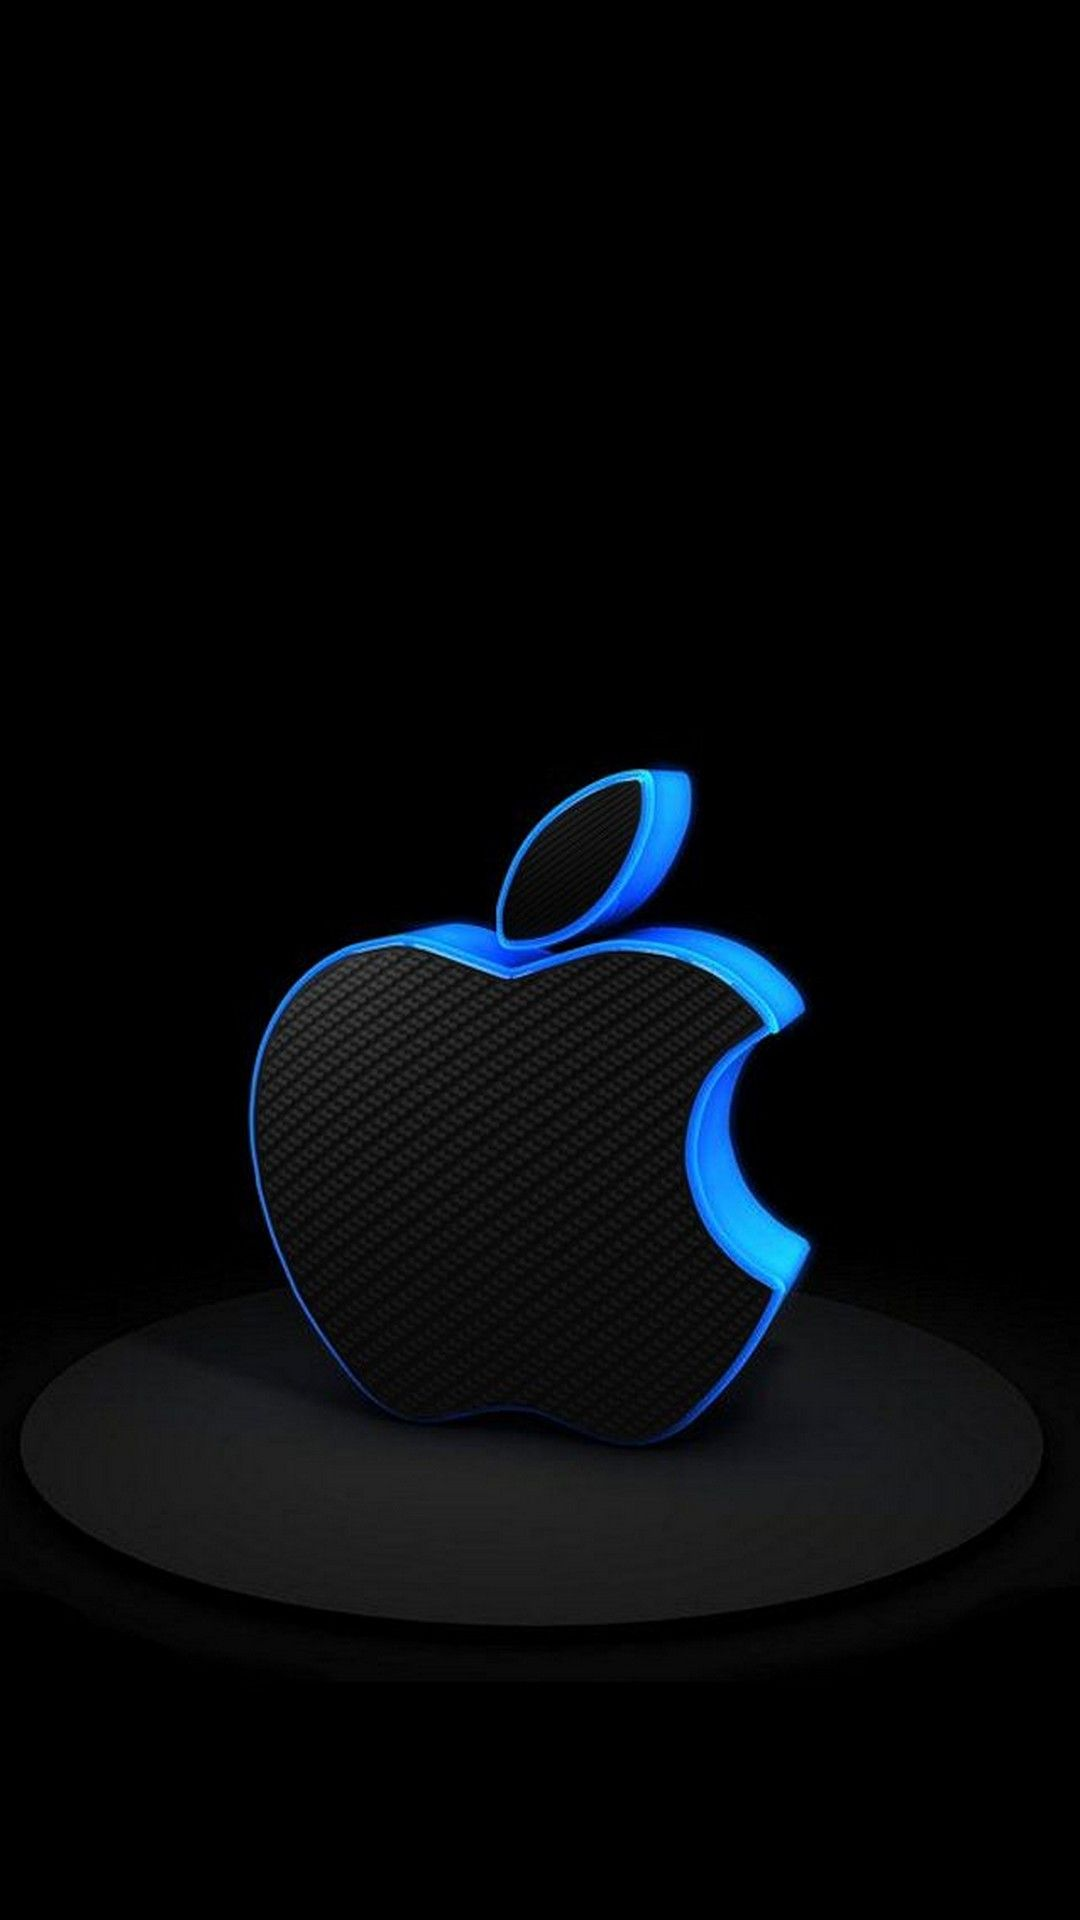 3d Iphone Wallpaper Best Iphone Wallpapers 2019 3d Iphone Wallpaper Best Iphone Wallpapers 20 Apple Logo Wallpaper Iphone Apple Wallpaper Iphone Iphone Logo